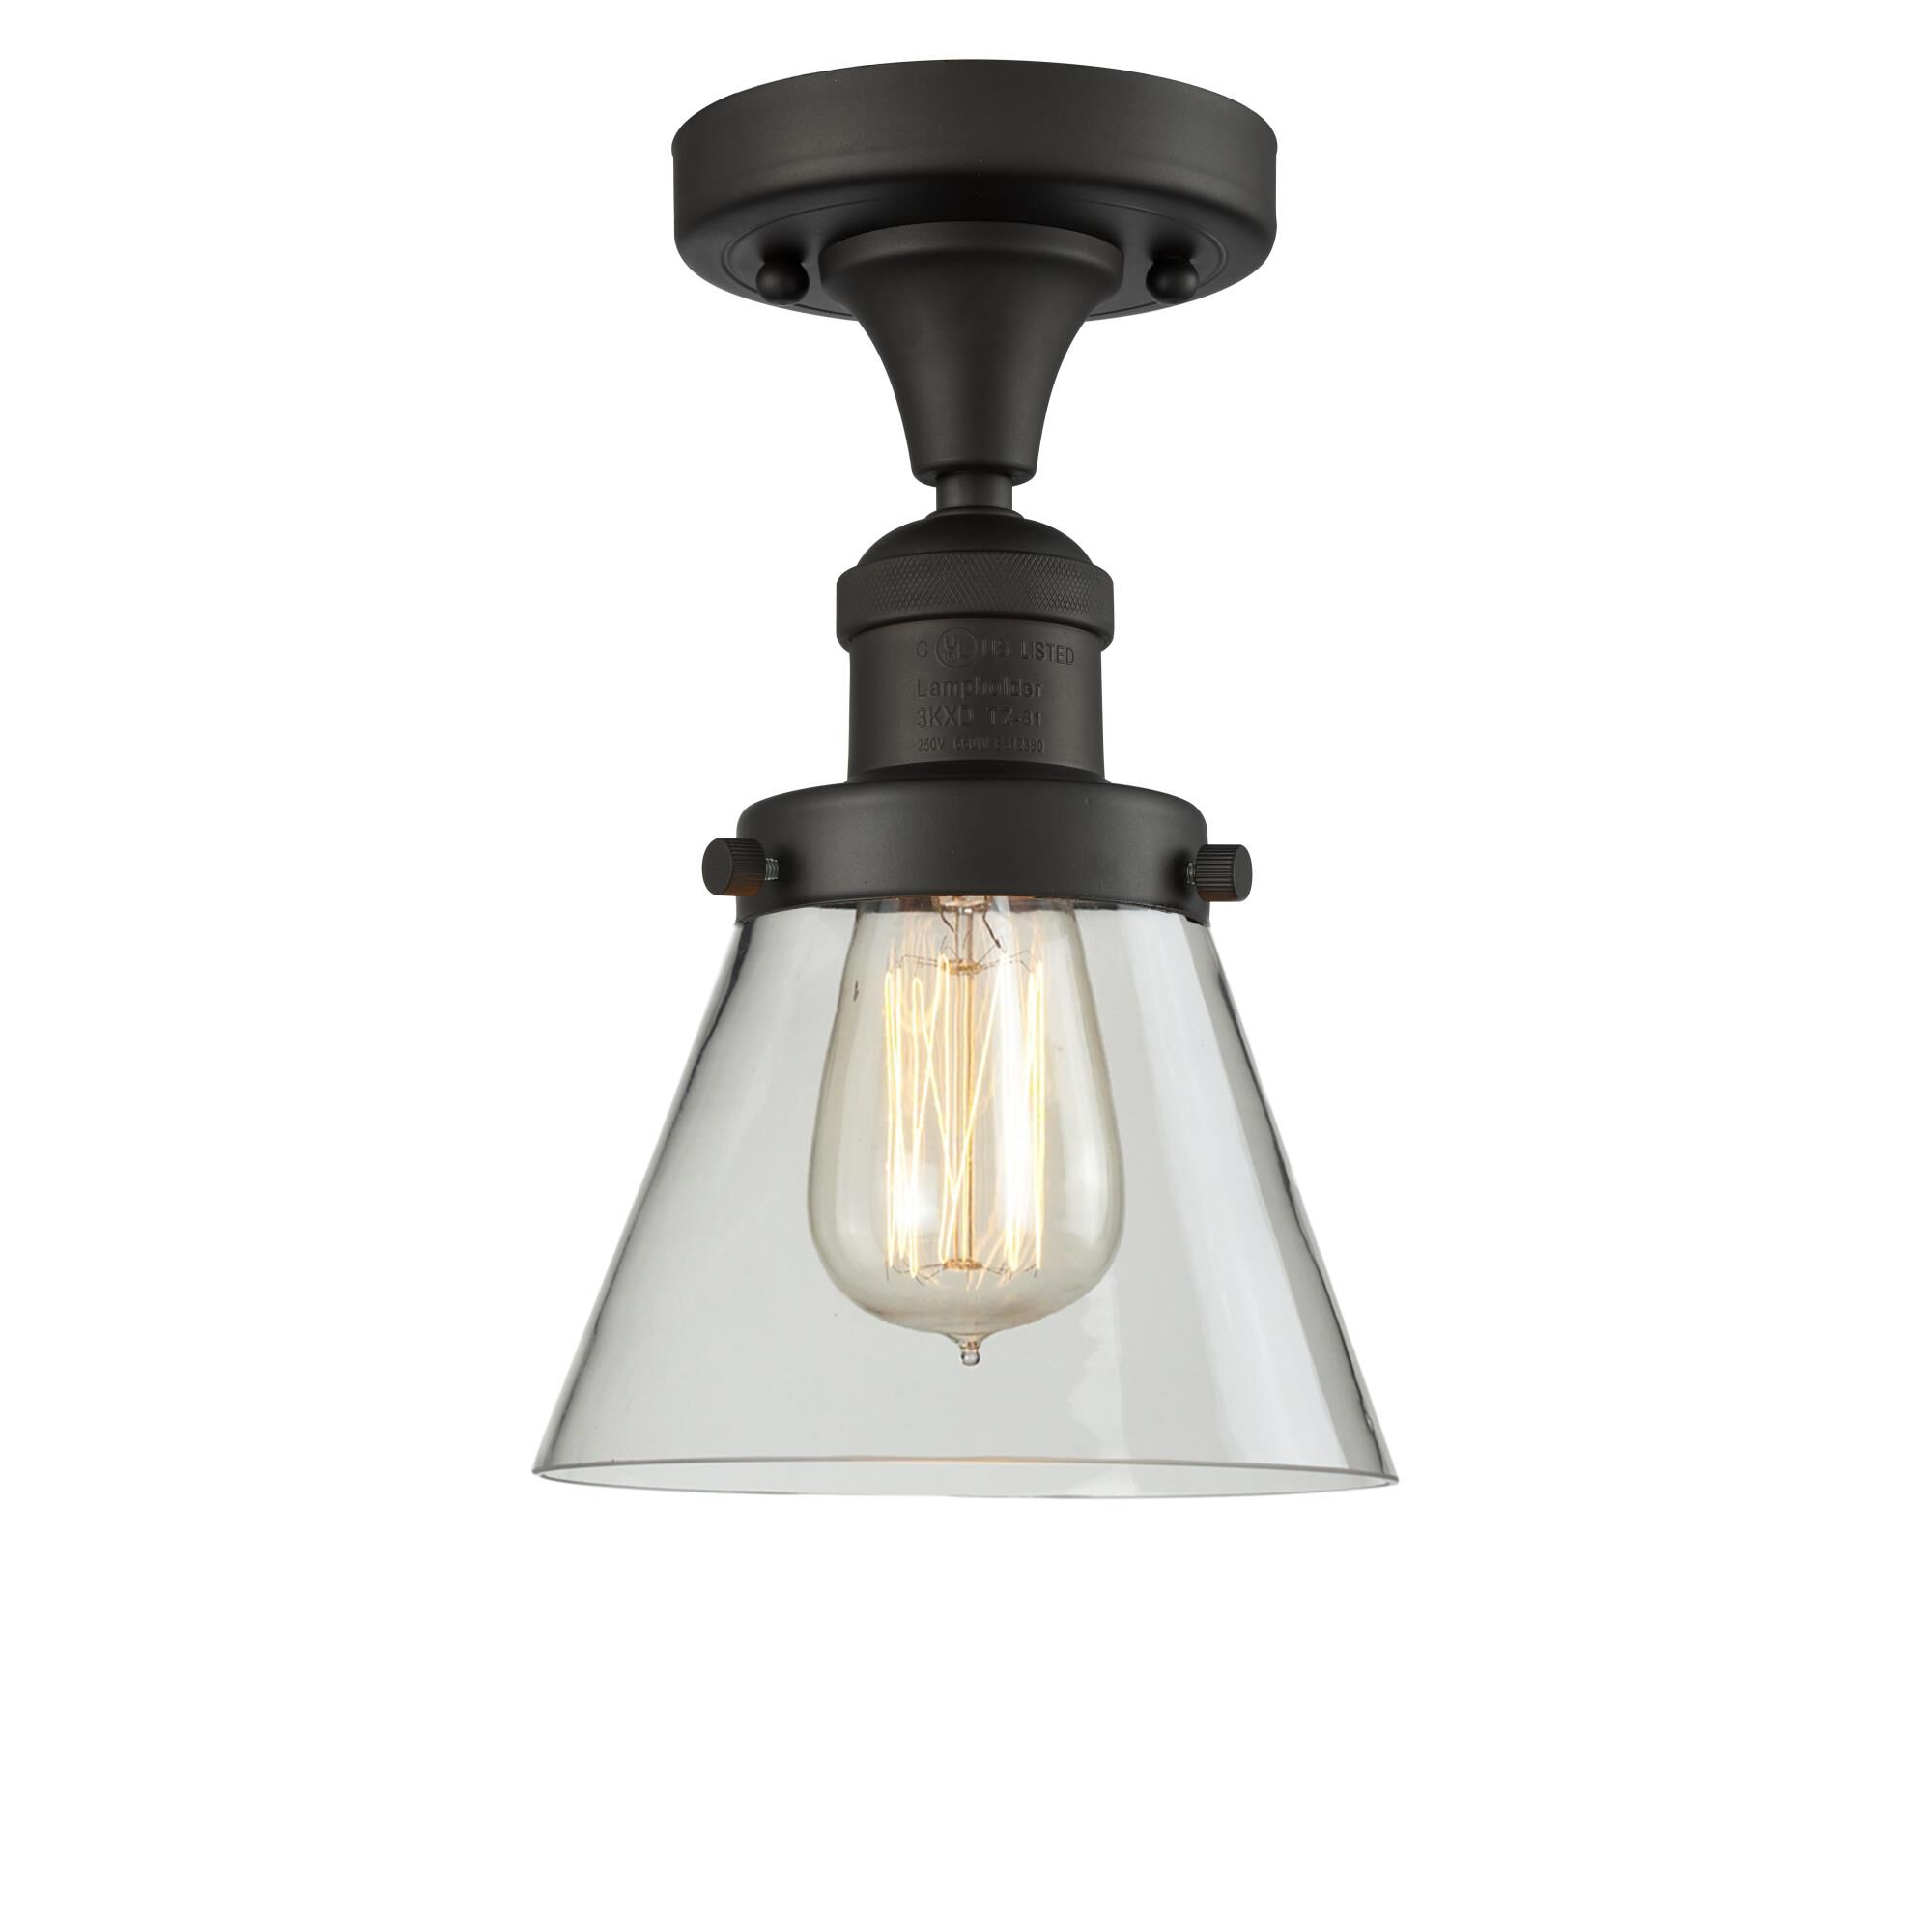 Innovations Lighting Bruno Marashlian Small Cone 6 Inch 1 Light Semi Flush Mount Small Cone - 517-1CH-OB-G62 - Restoration-Vintage Semi Flush Mount